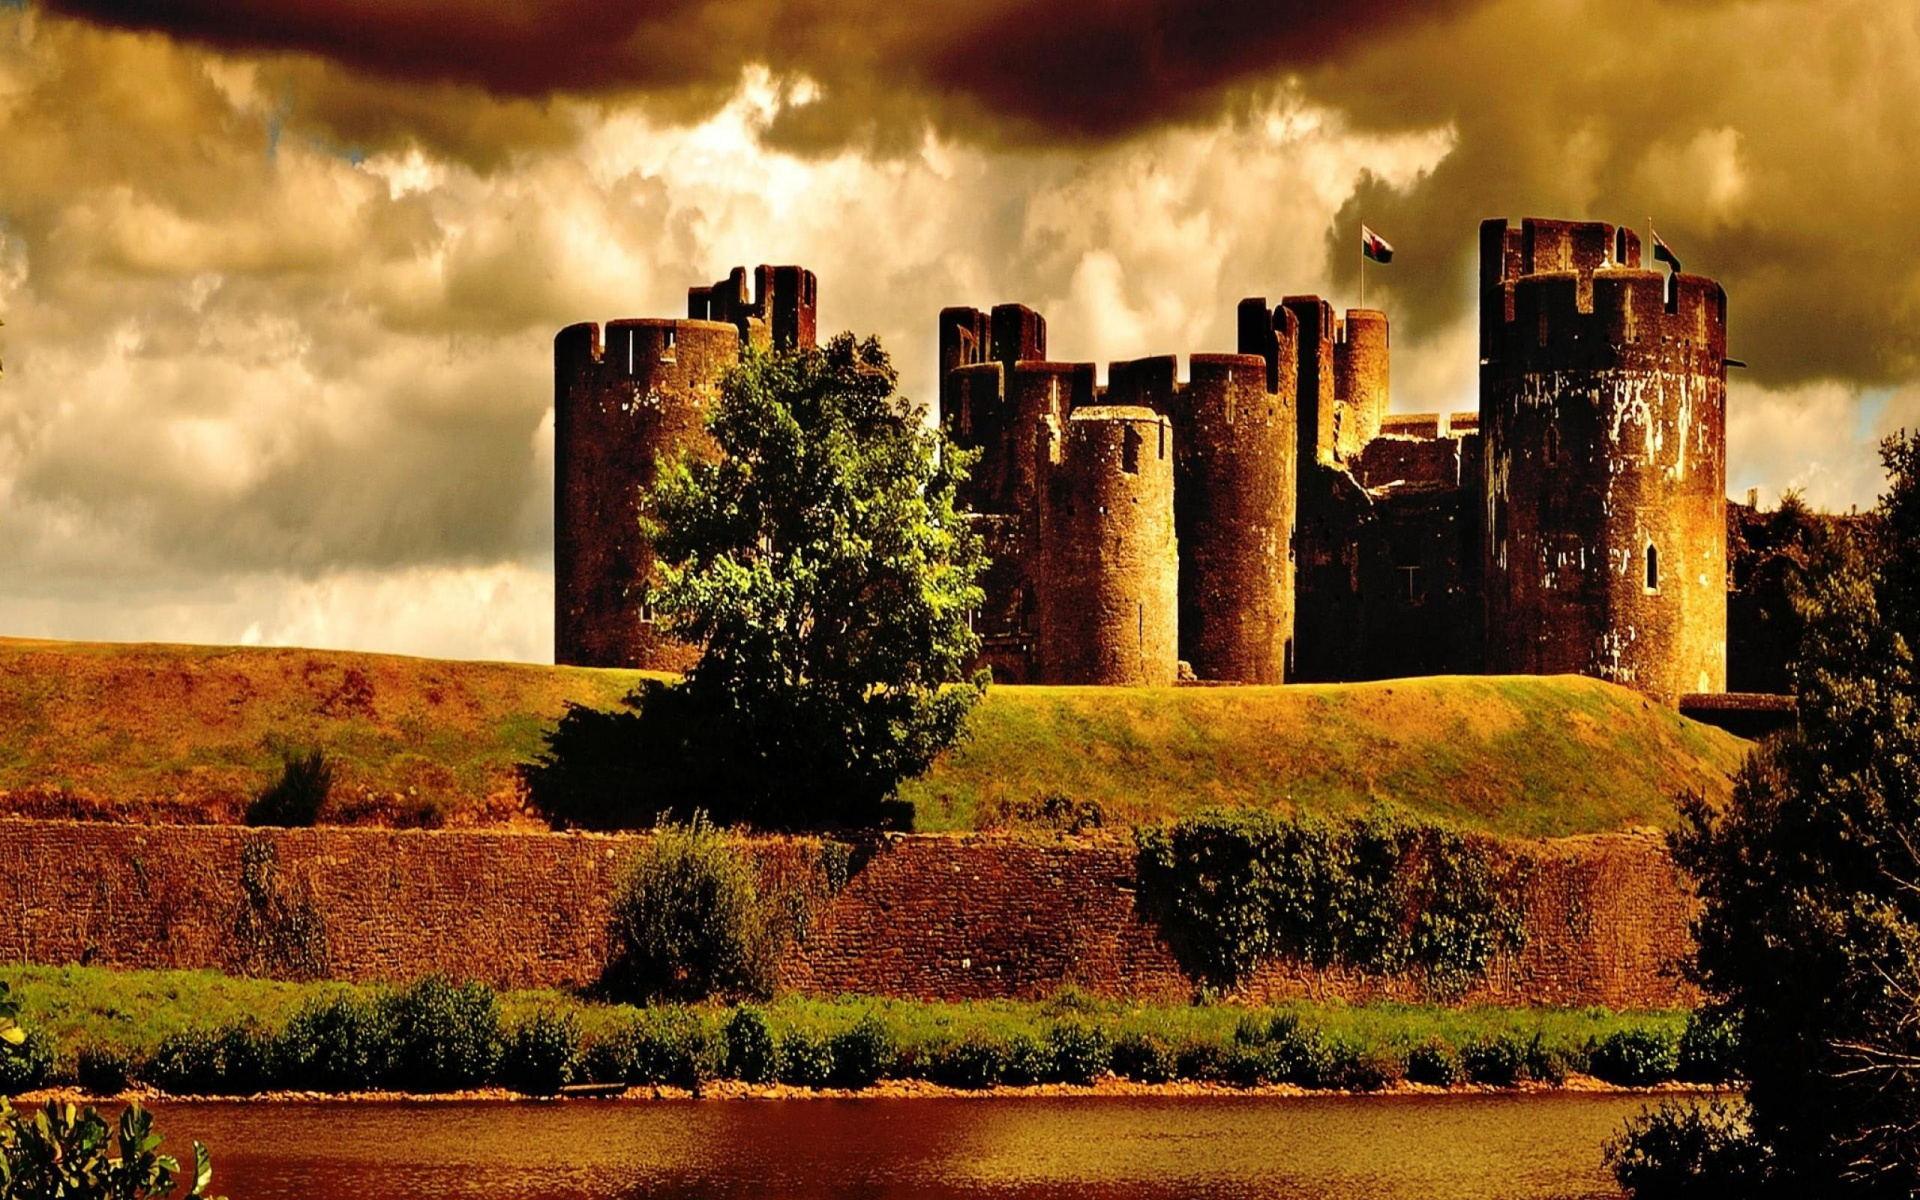 The Below Image is download Caerphilly castle united kingdom Wallpaper 1920x1200